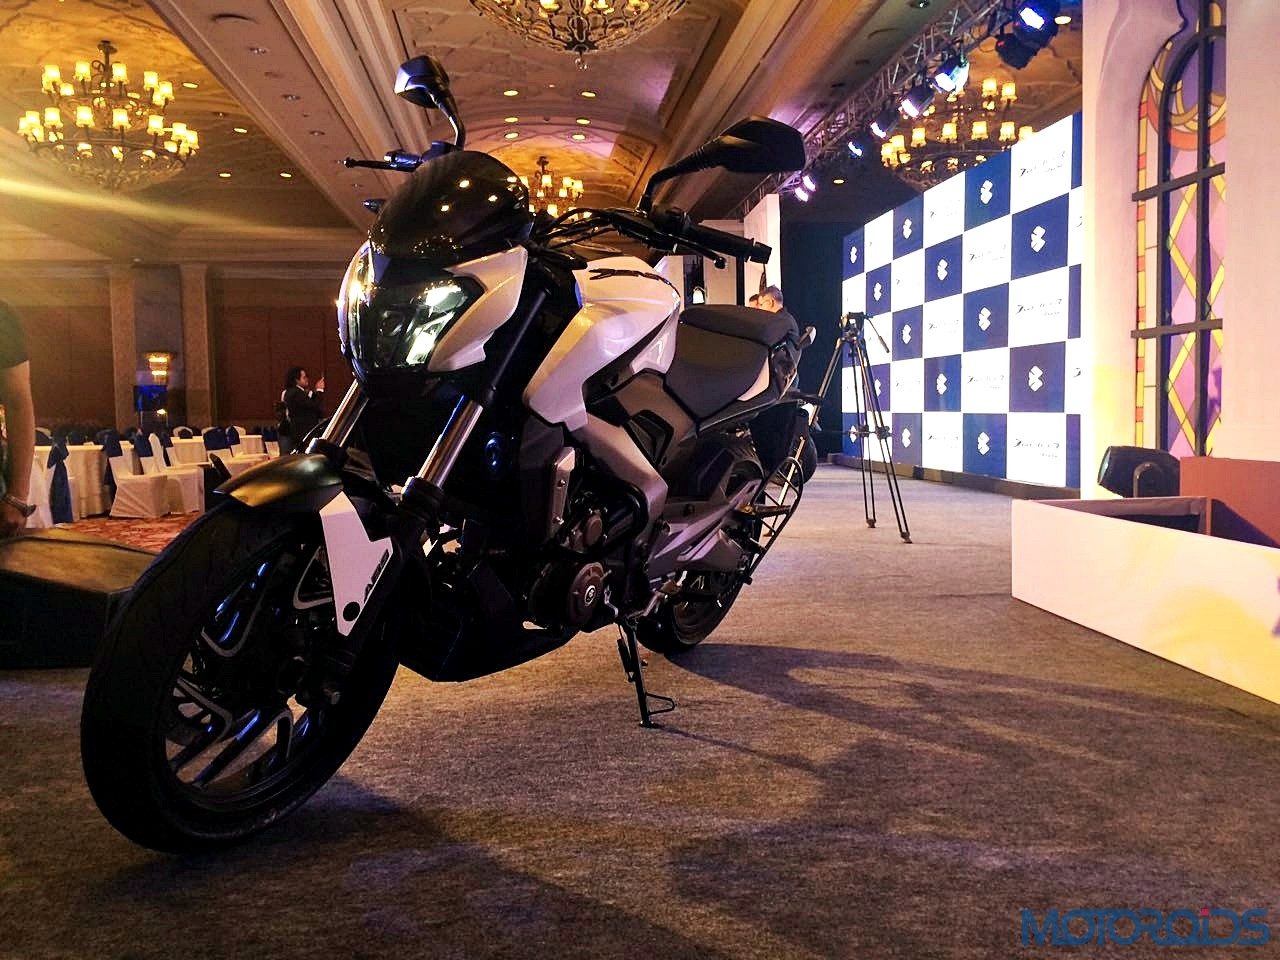 bajaj-Dominar-India-Launch-Images-22